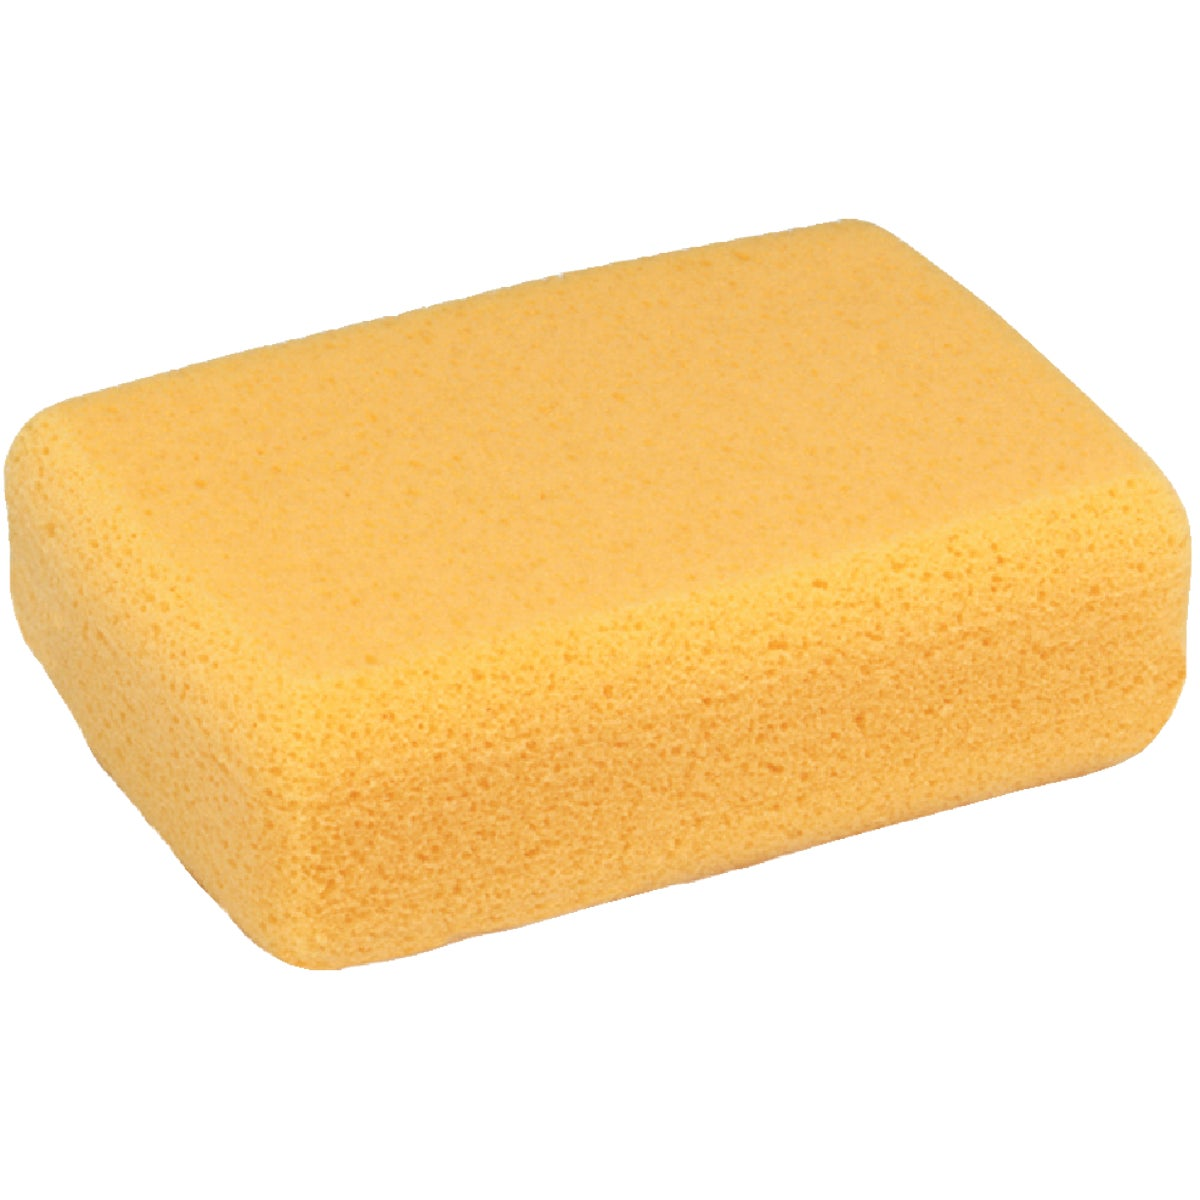 TGS1 GROUT SPONGE - 16463 by Marshalltown Trowel